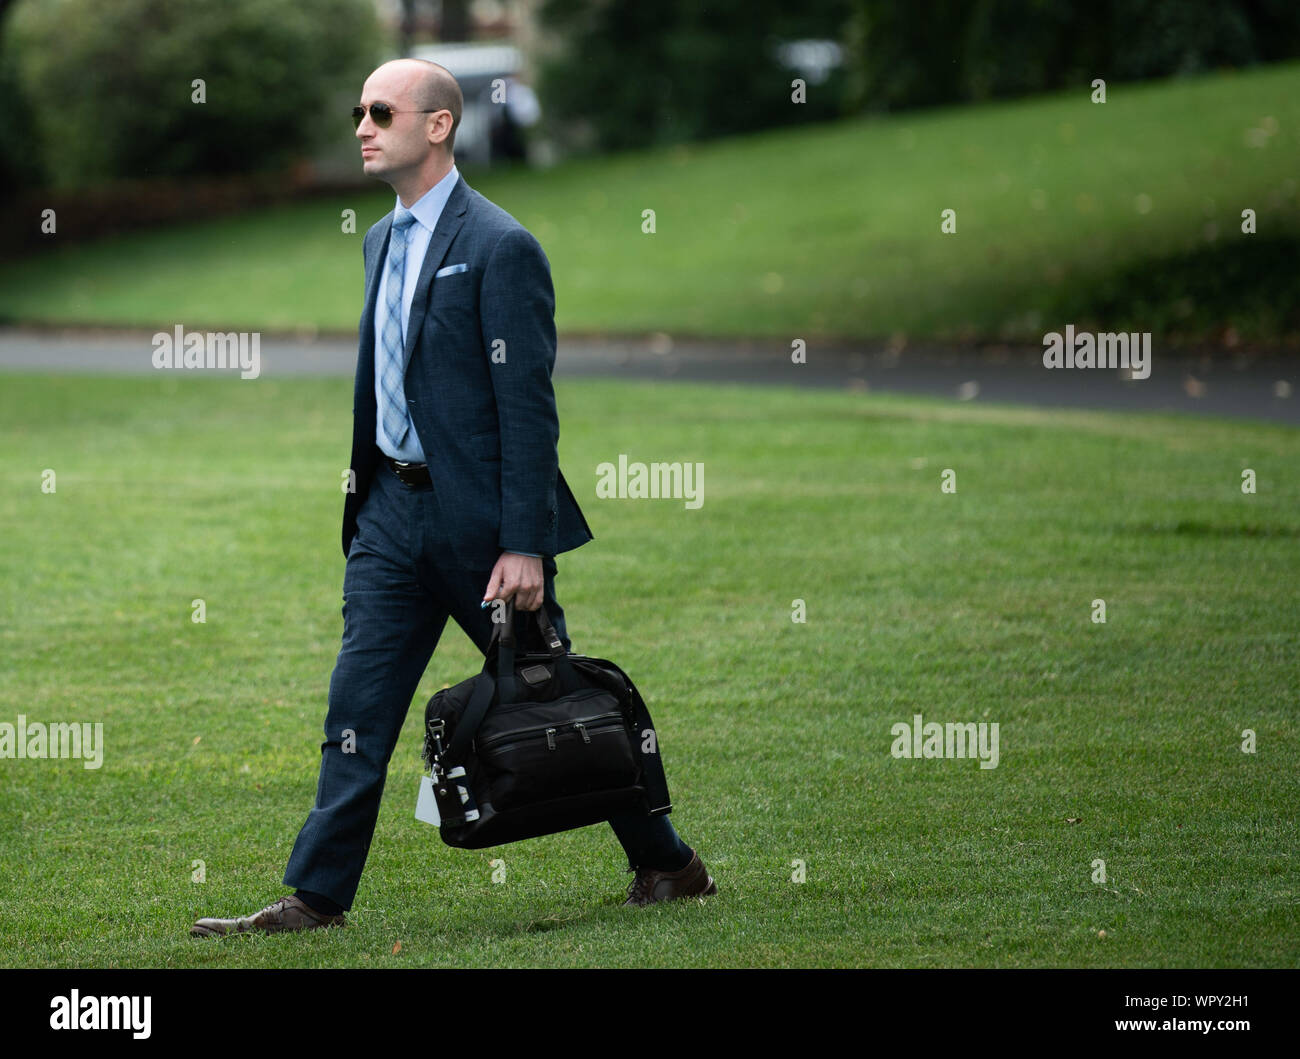 Washington DC, USA. 9th Sep 2019. Stephen Miller Senior Advisor to President Donald Trump departs with President Donald Trump for a rally in North Carolina, in Washington, DC on Monday, September 9, 2019. Photo by Kevin Dietsch/UPI Credit: UPI/Alamy Live News Stock Photo